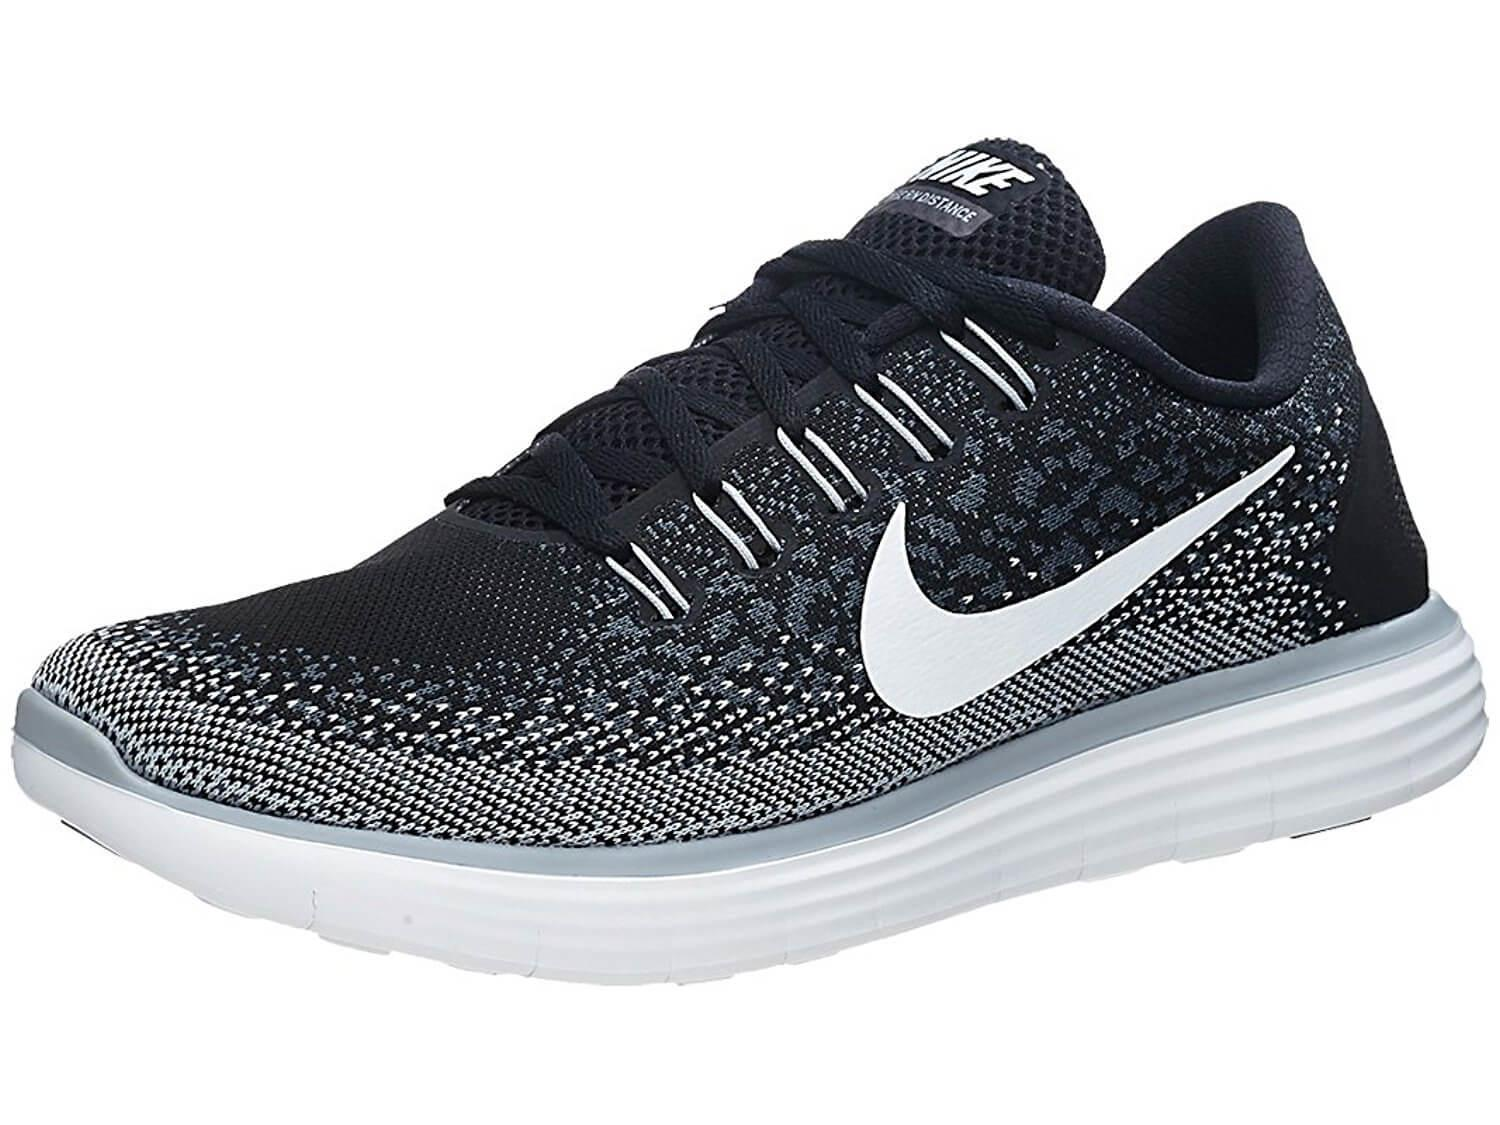 a72c8512aa5 The Nike Free RN Distance is an excellent all-around running shoe.